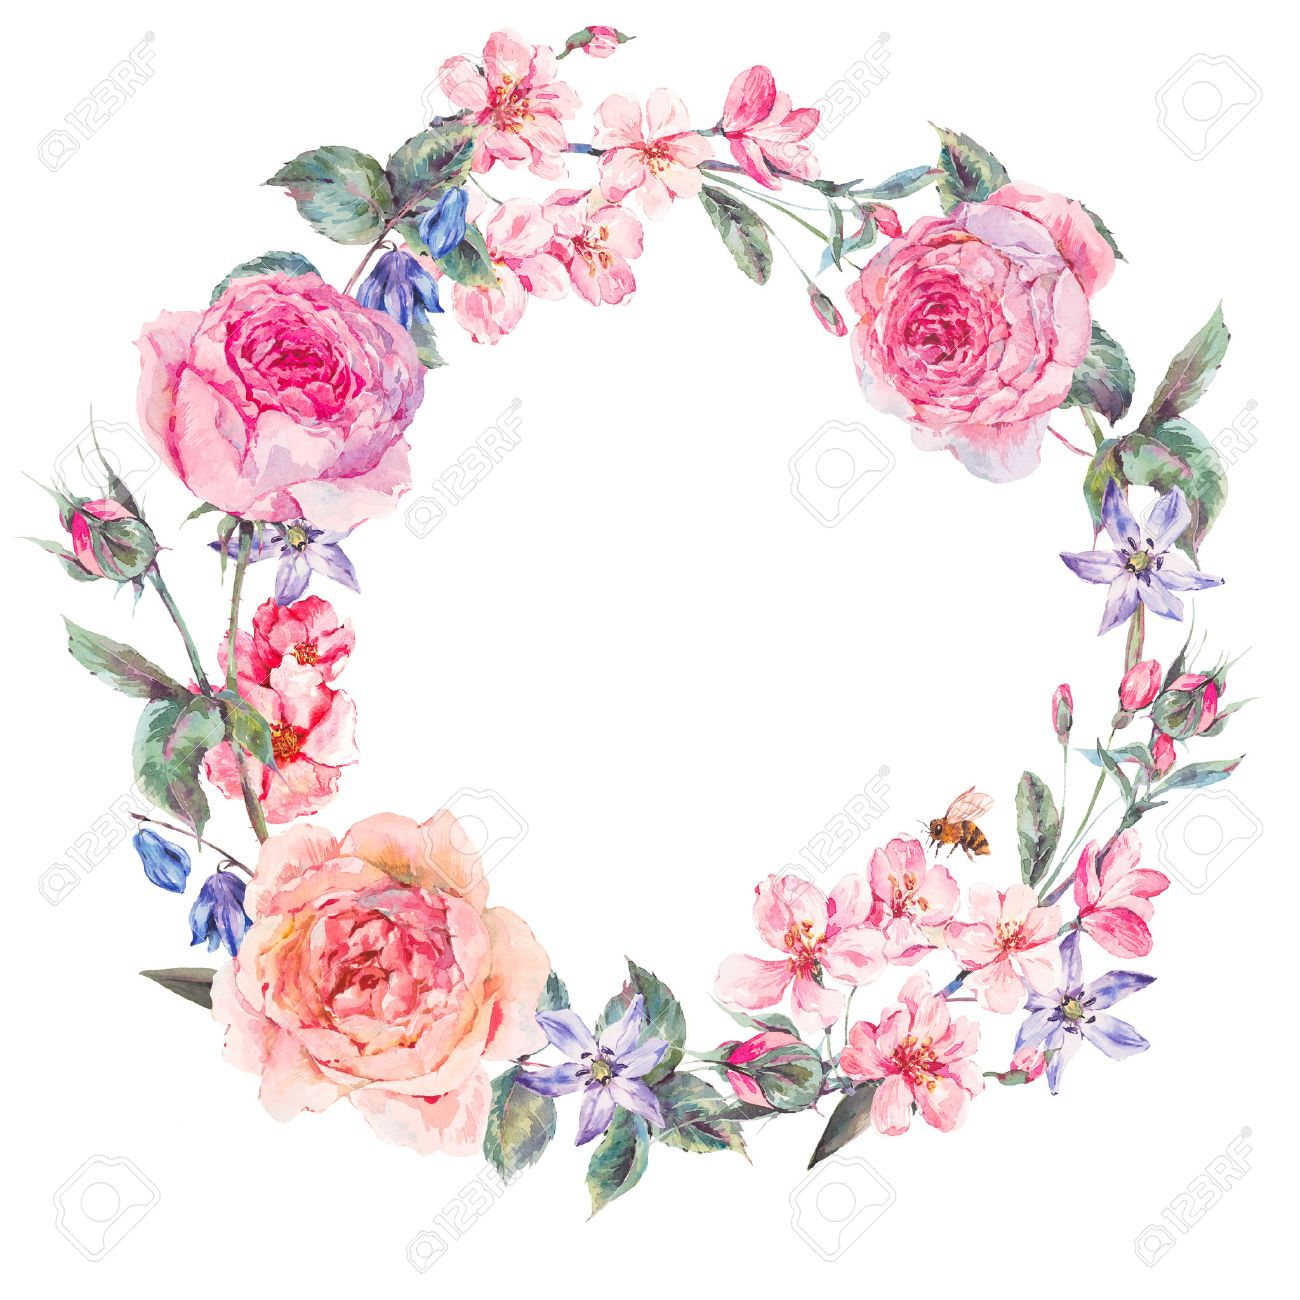 Vintage Garden Watercolor Spring Round Floral Wreath With Pink